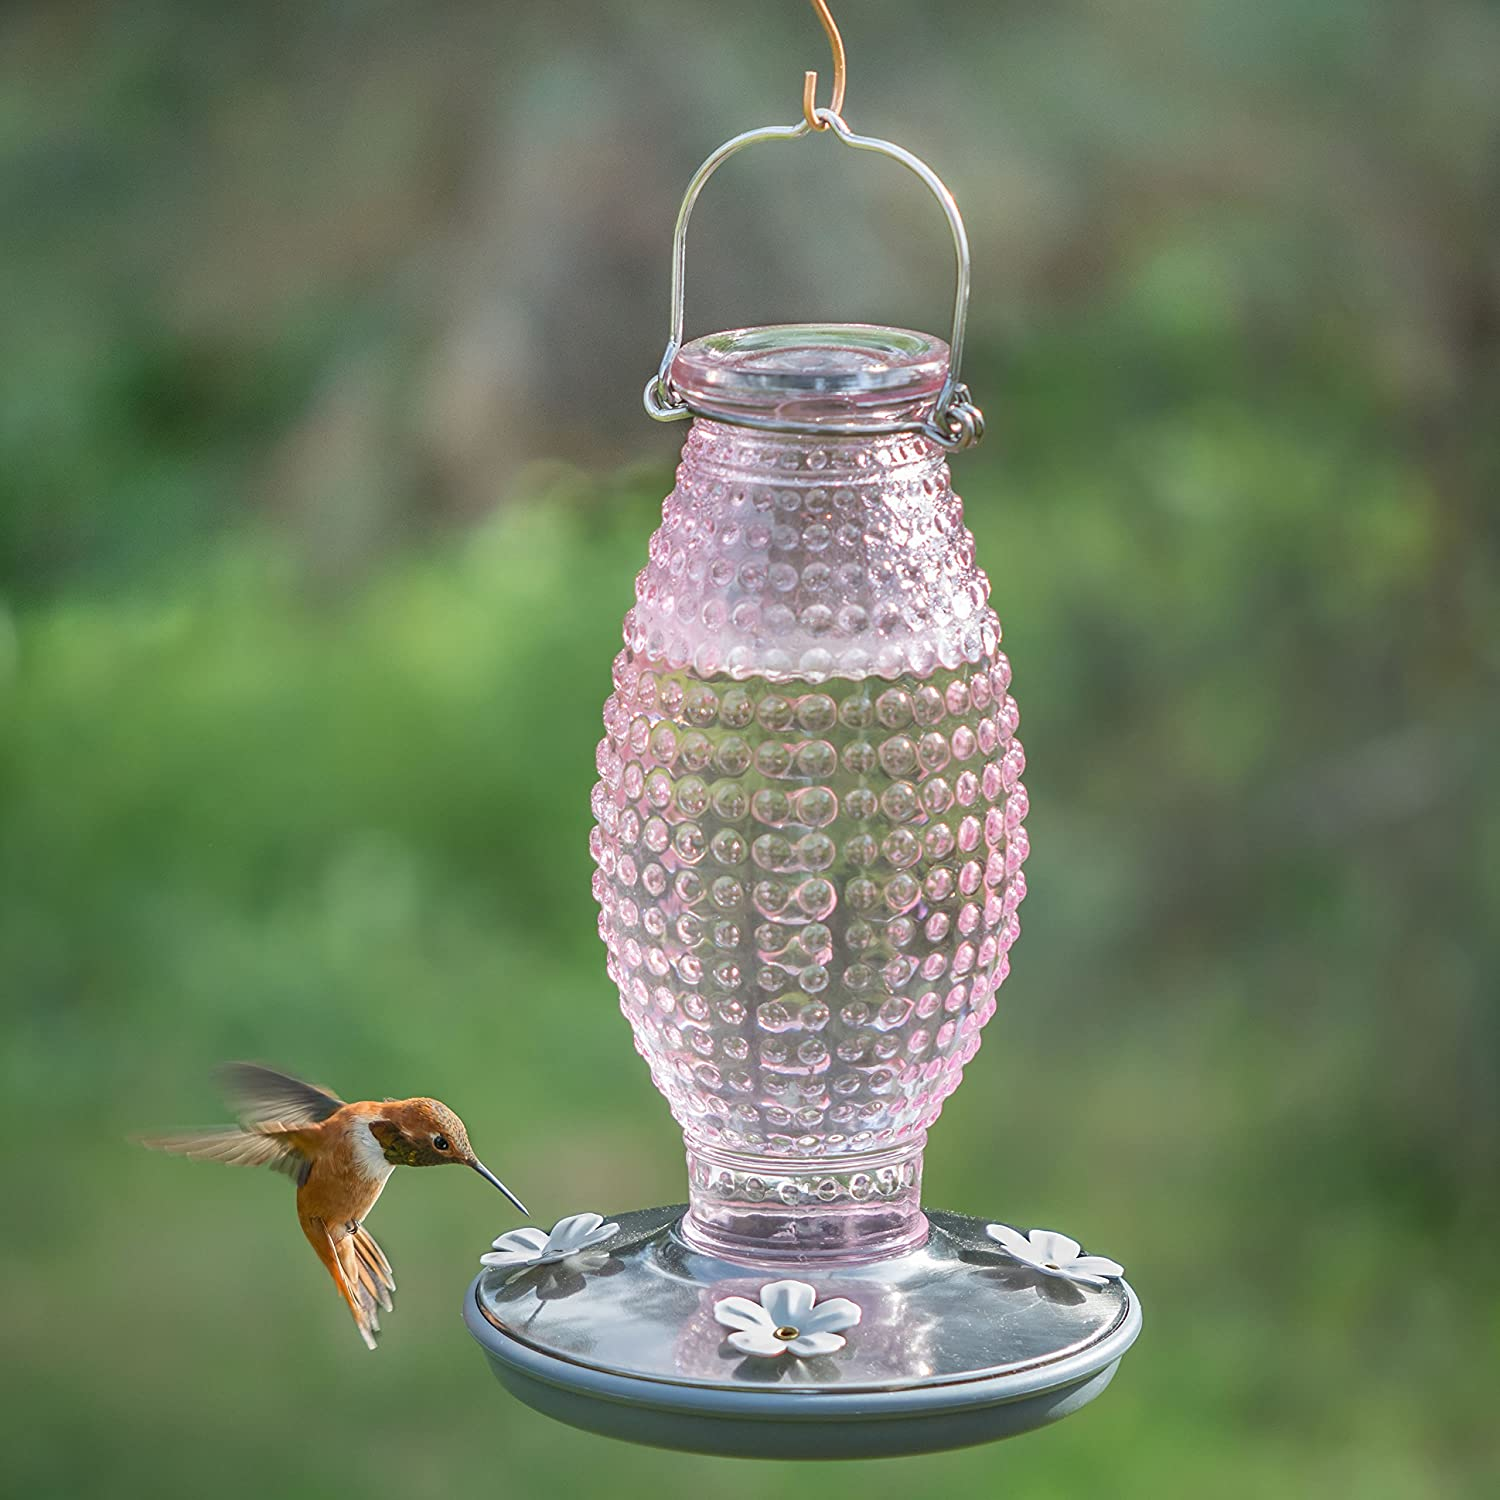 cool impressive for feeders amazon hummingbird full decorative feeder image glass sale blown window wbu